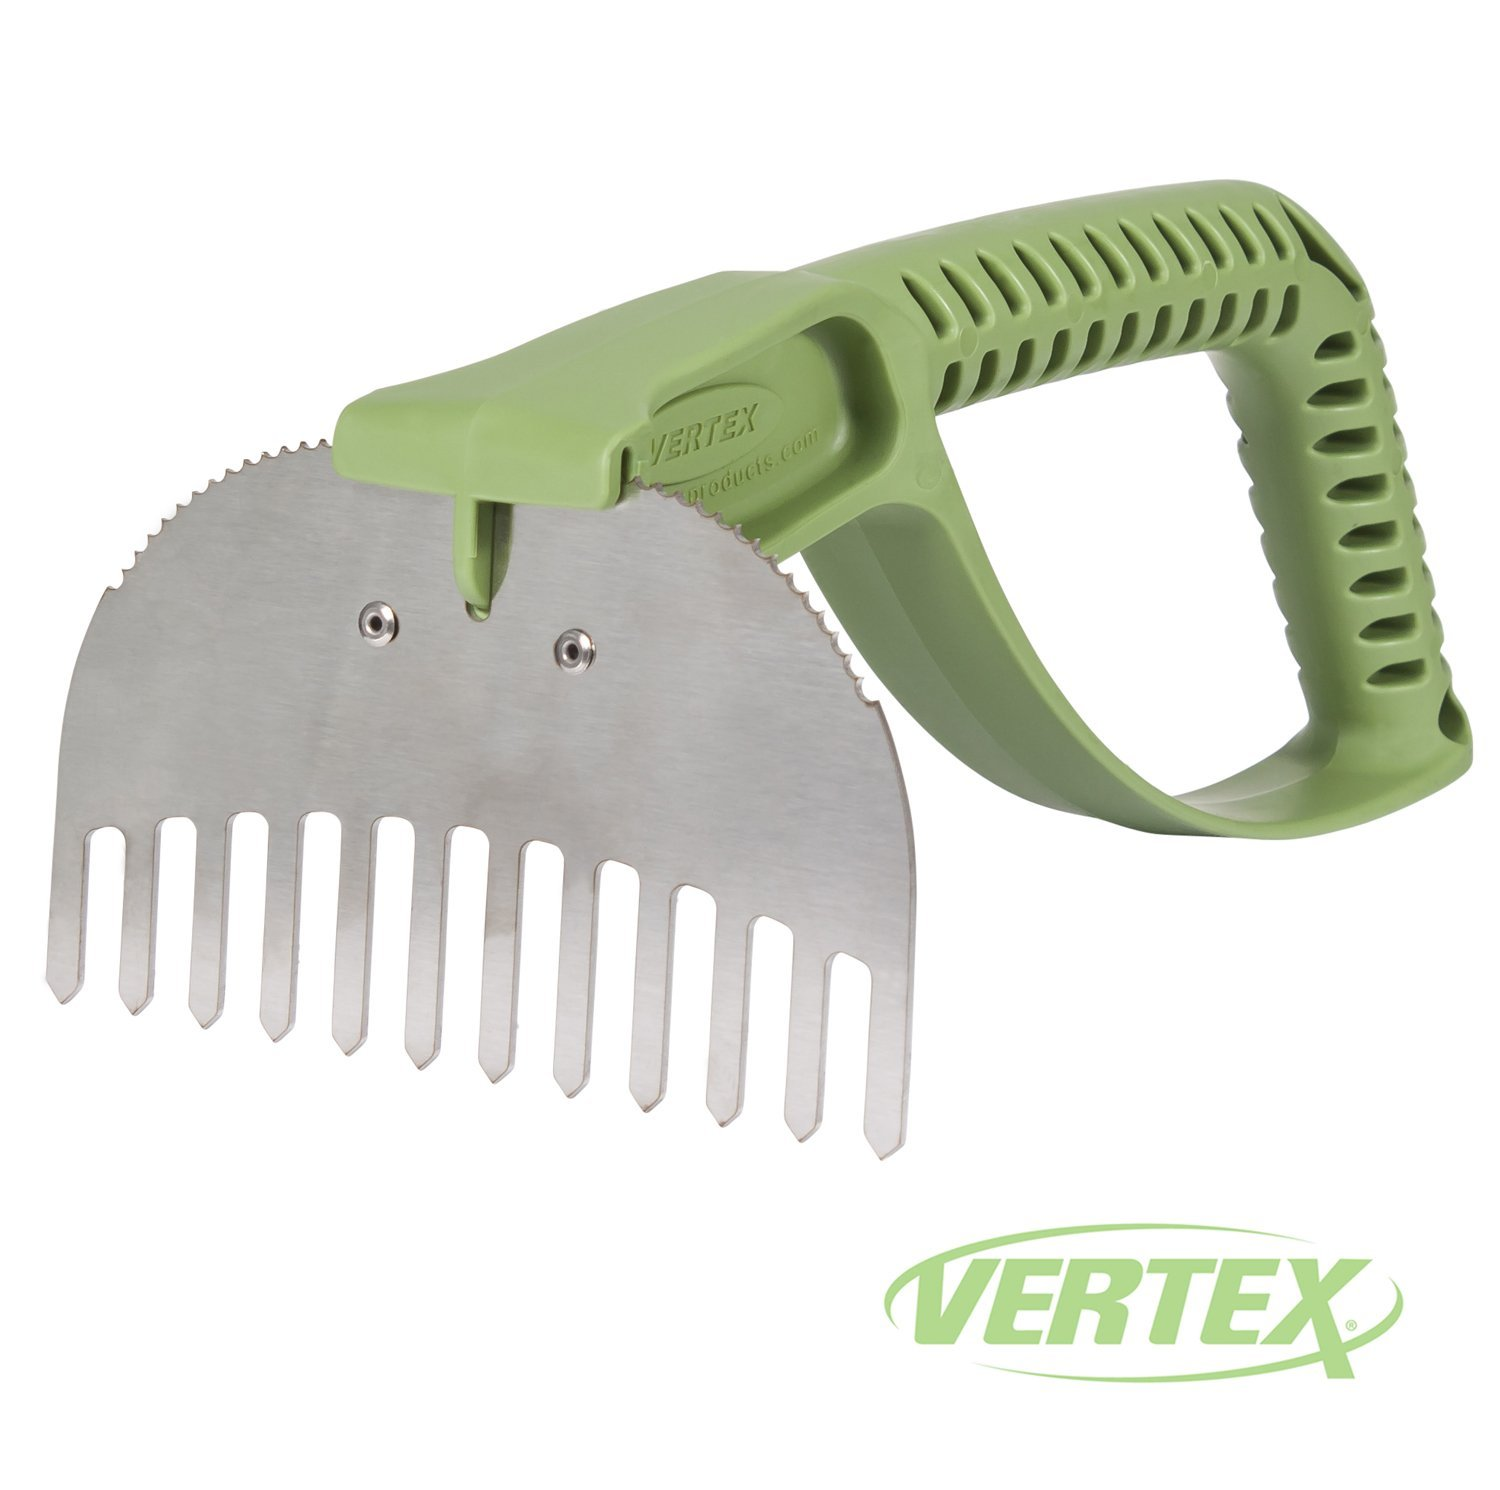 NaturalGripx2122; Egonomic Rake Garden Tool by Vertex174; with Stainless Steel Head and Comfort Grip Handle - Made in USA - Model P1405